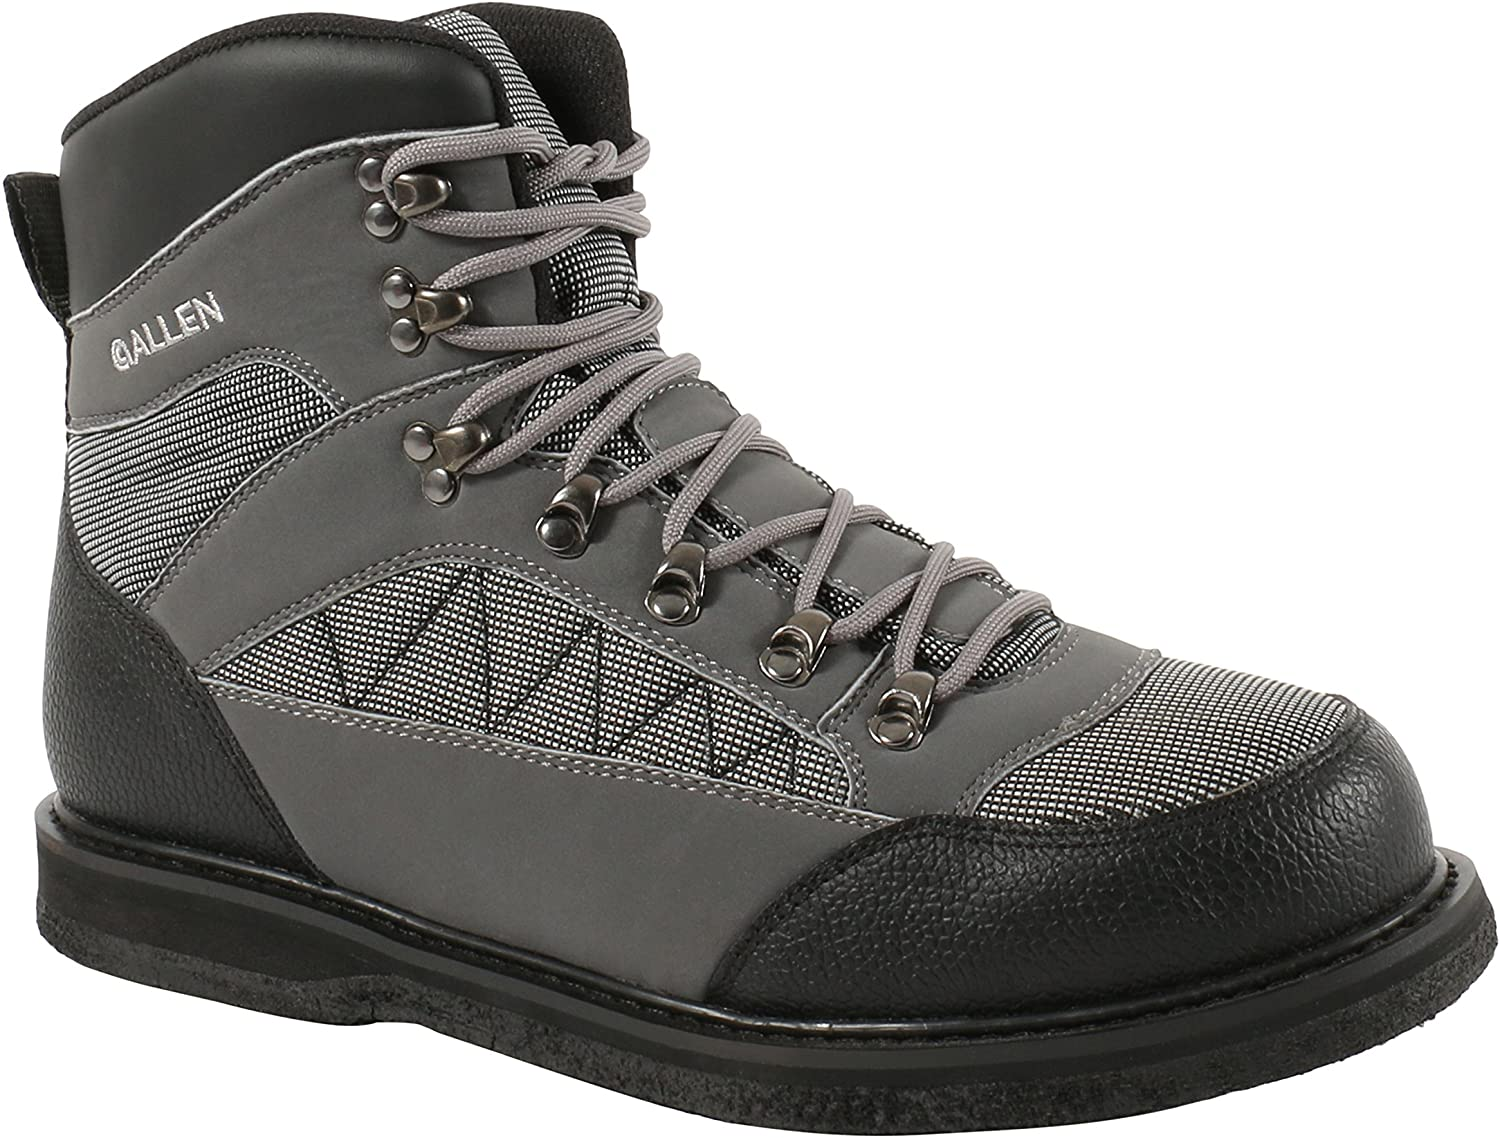 inexpensive wading boots